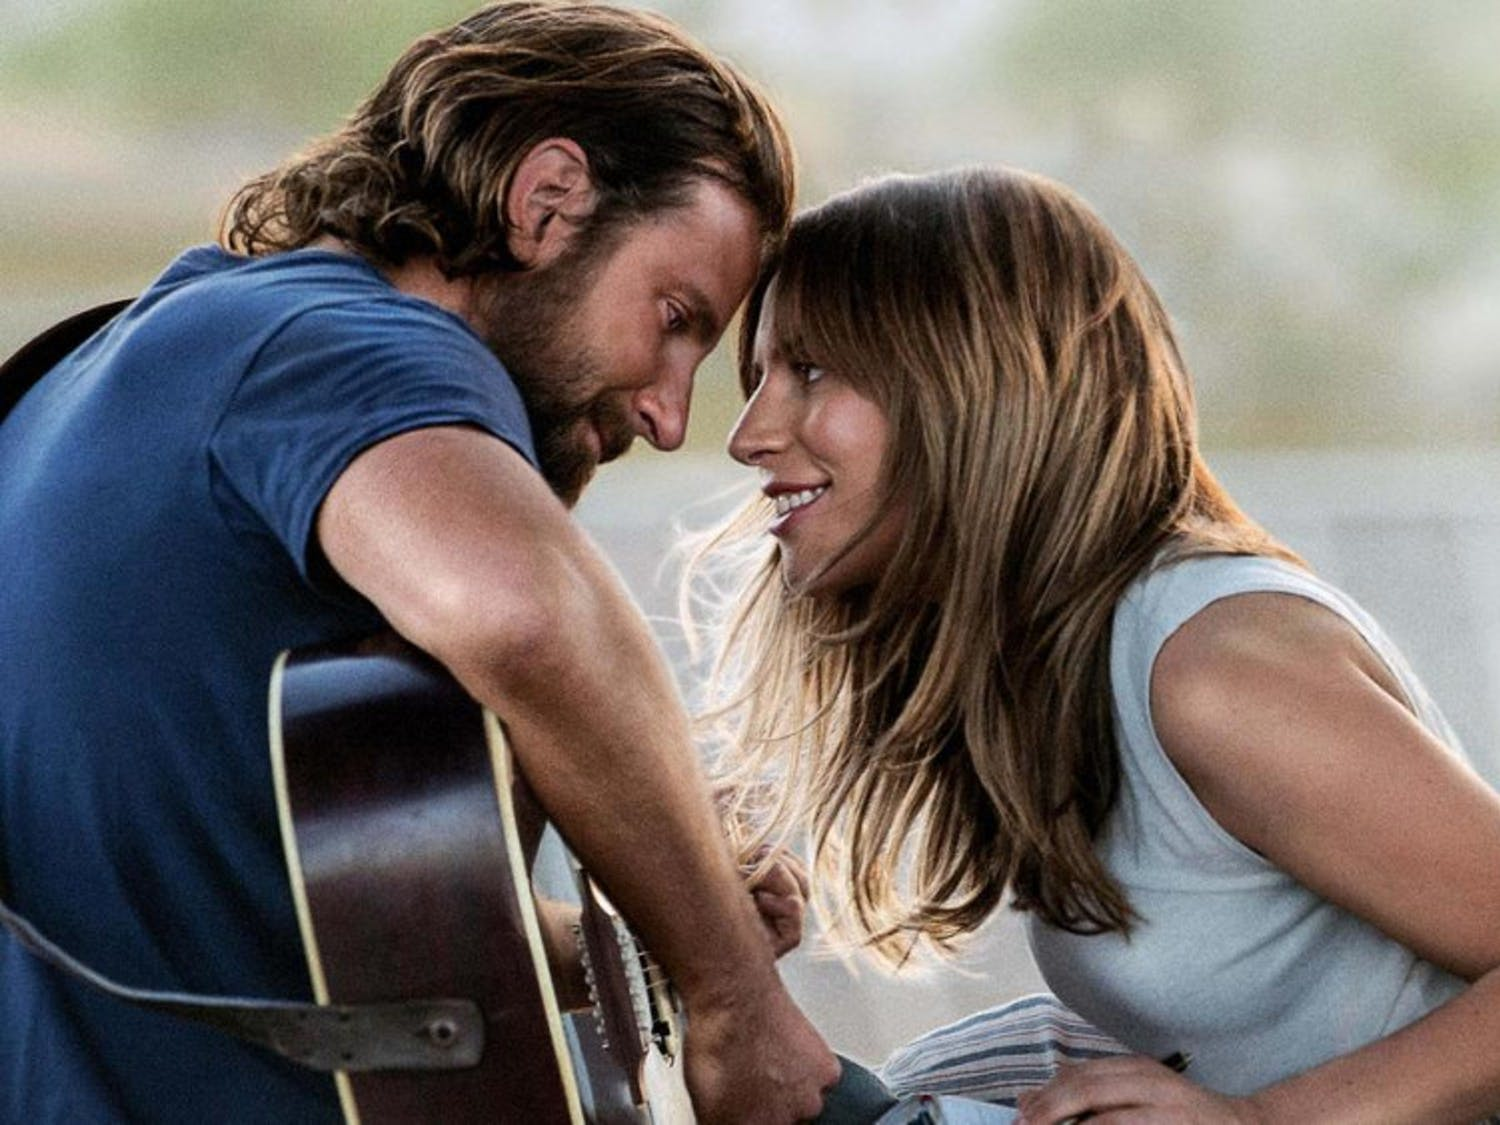 Lady Gaga and Bradley Cooper's chemistry in 'A Star is Born' could warm even the coldest of hearts.